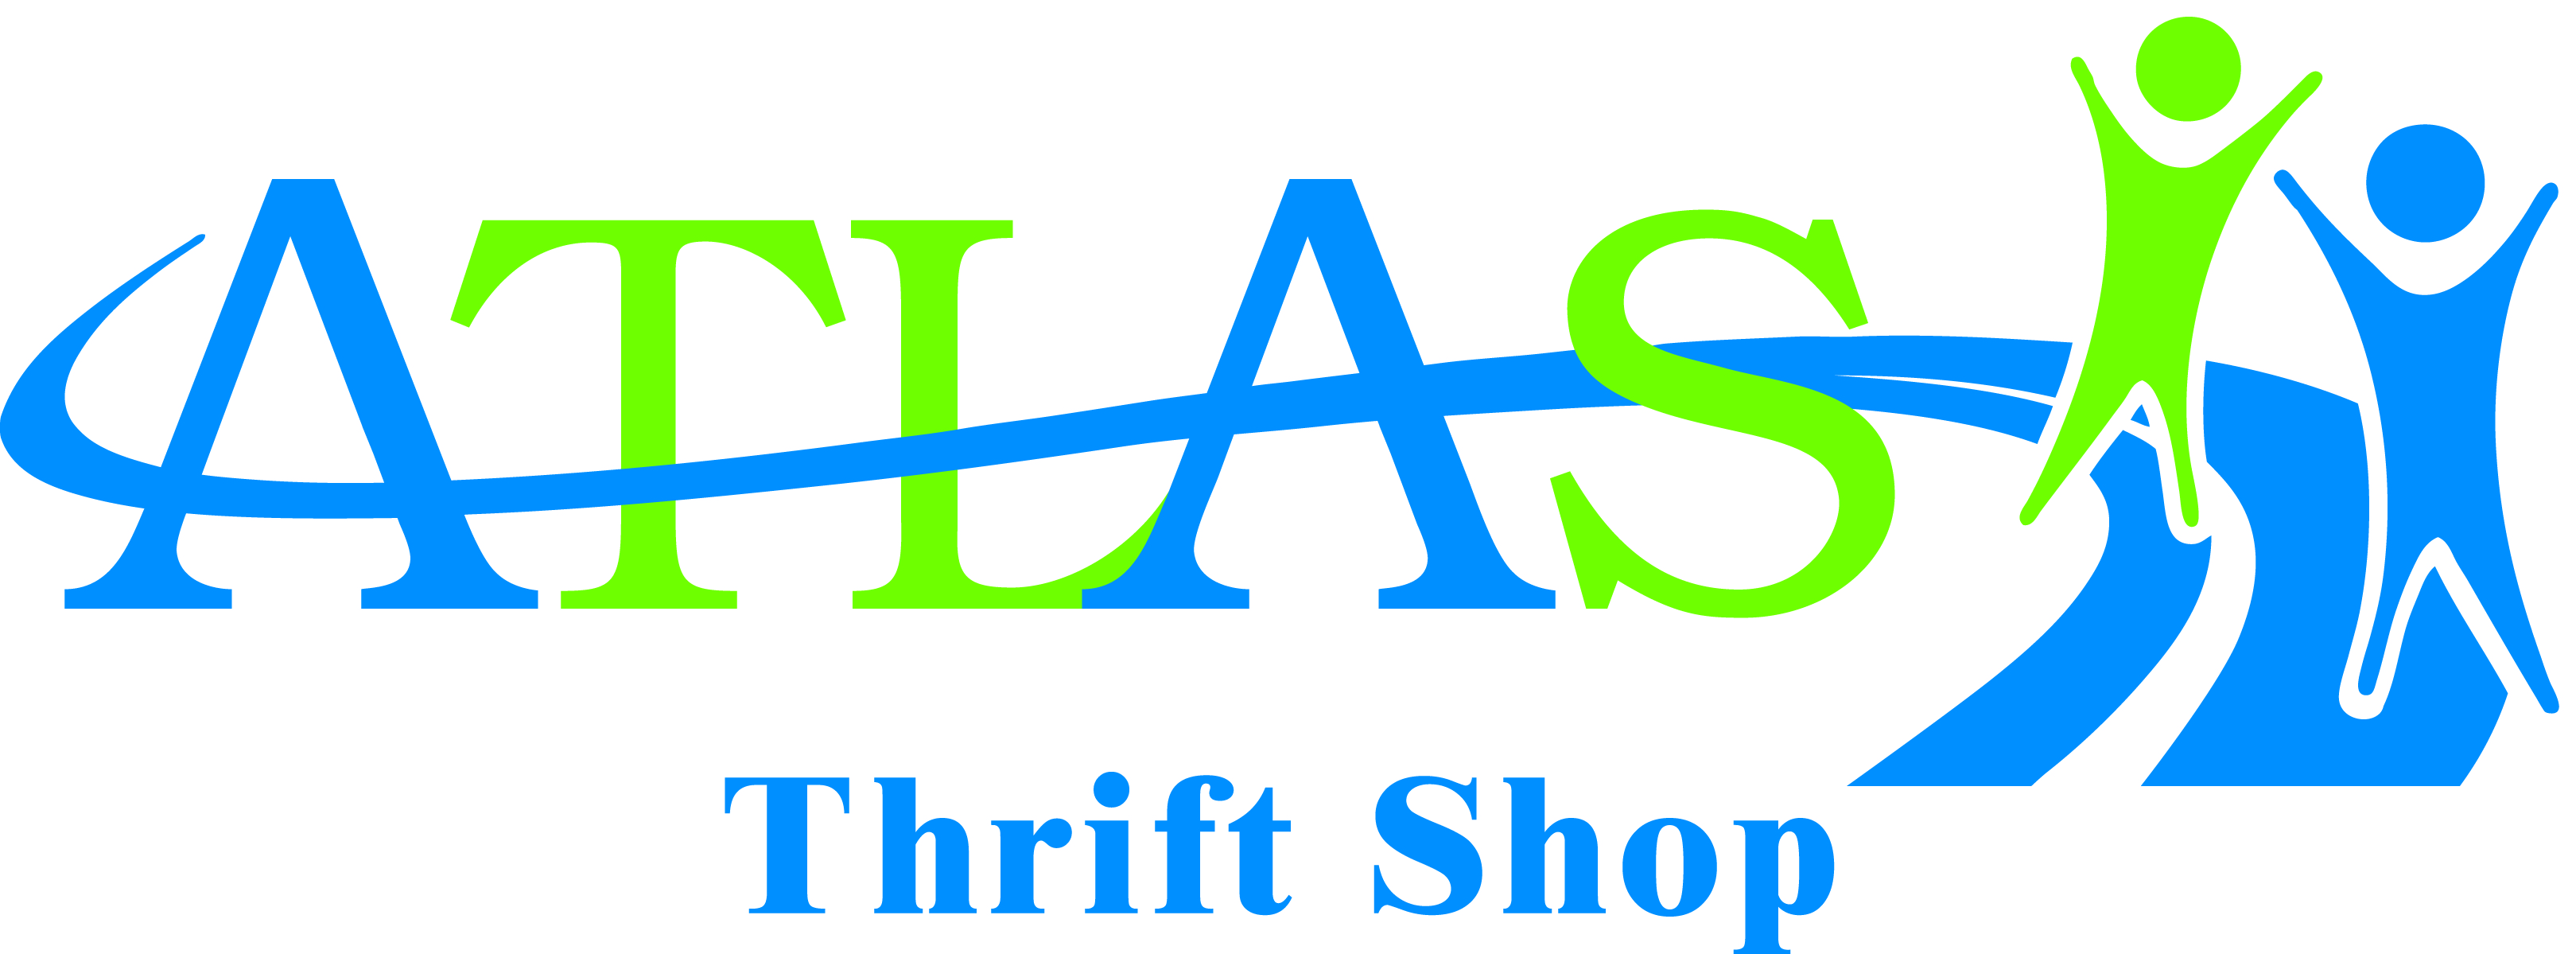 ATLAS_Thrift_Shop_logo